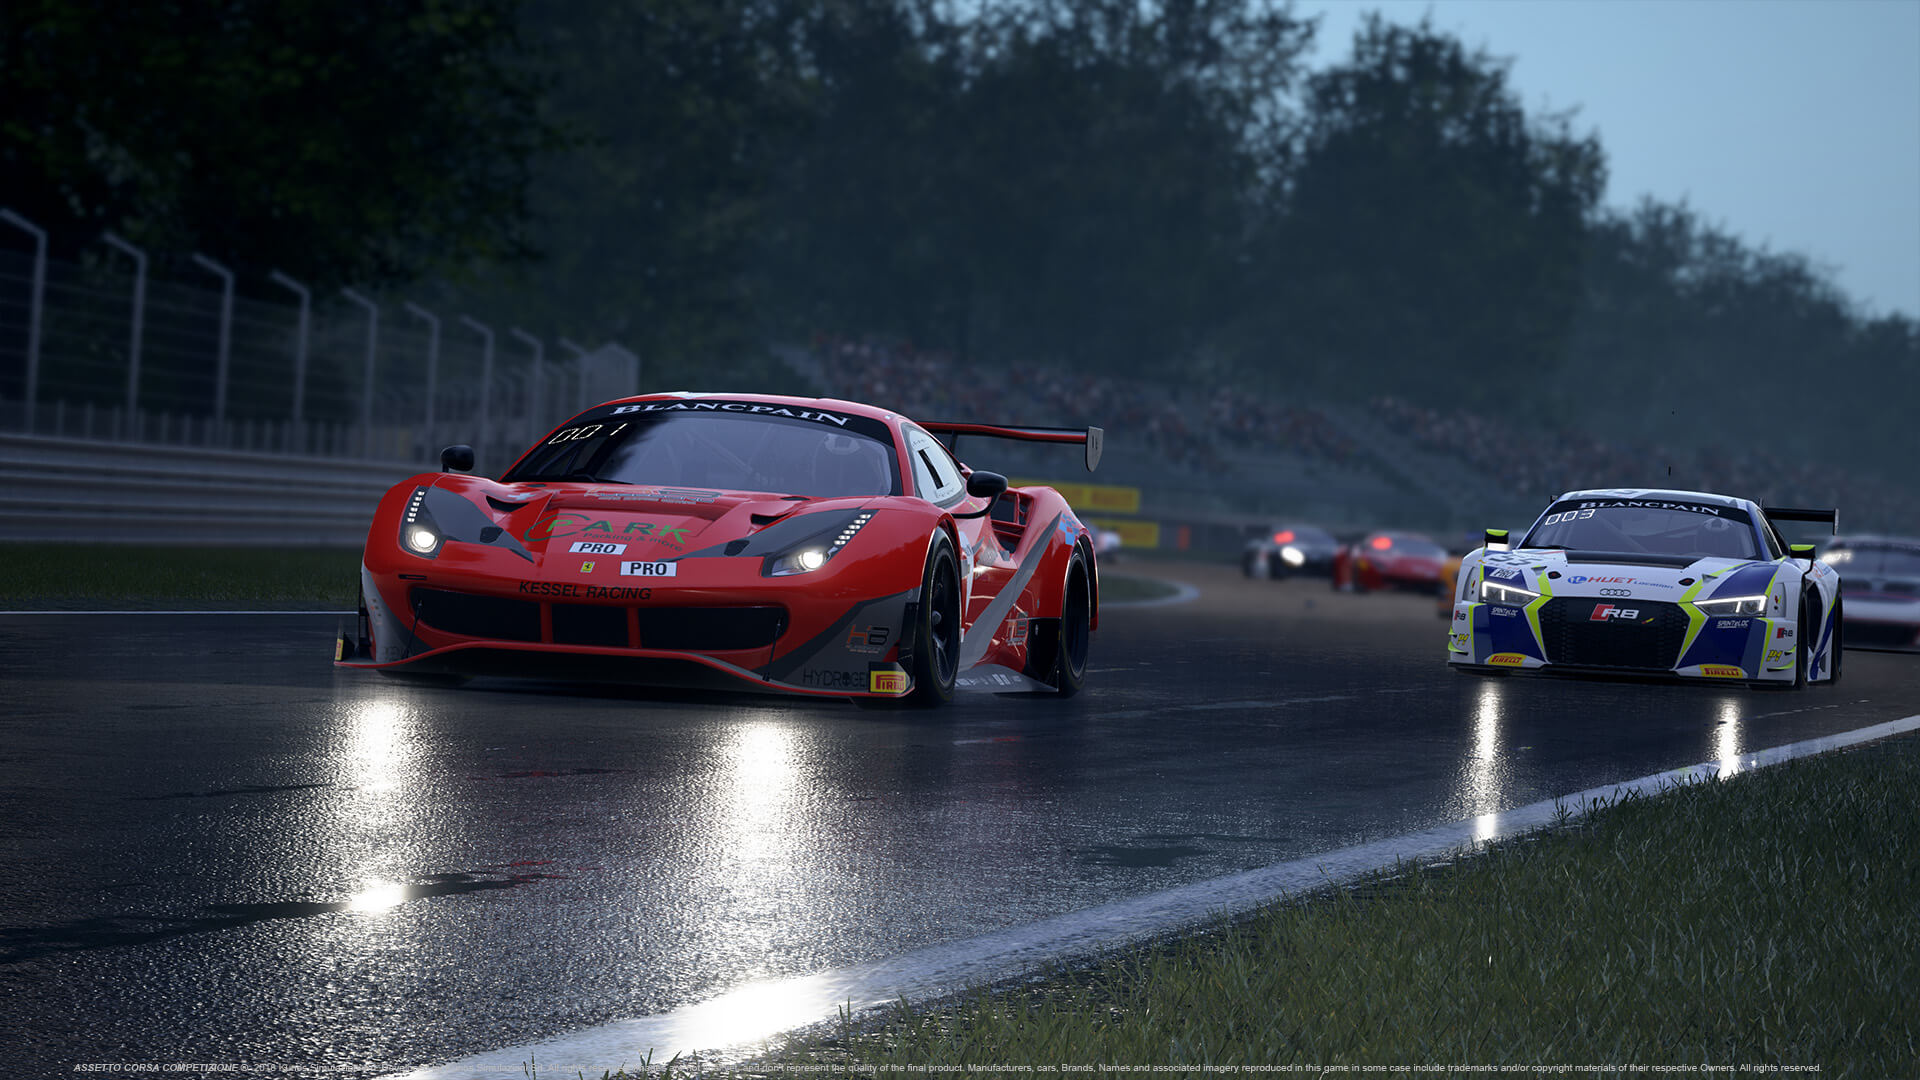 Assetto Corsa Competizione with weather effects such as rain and a drying track.